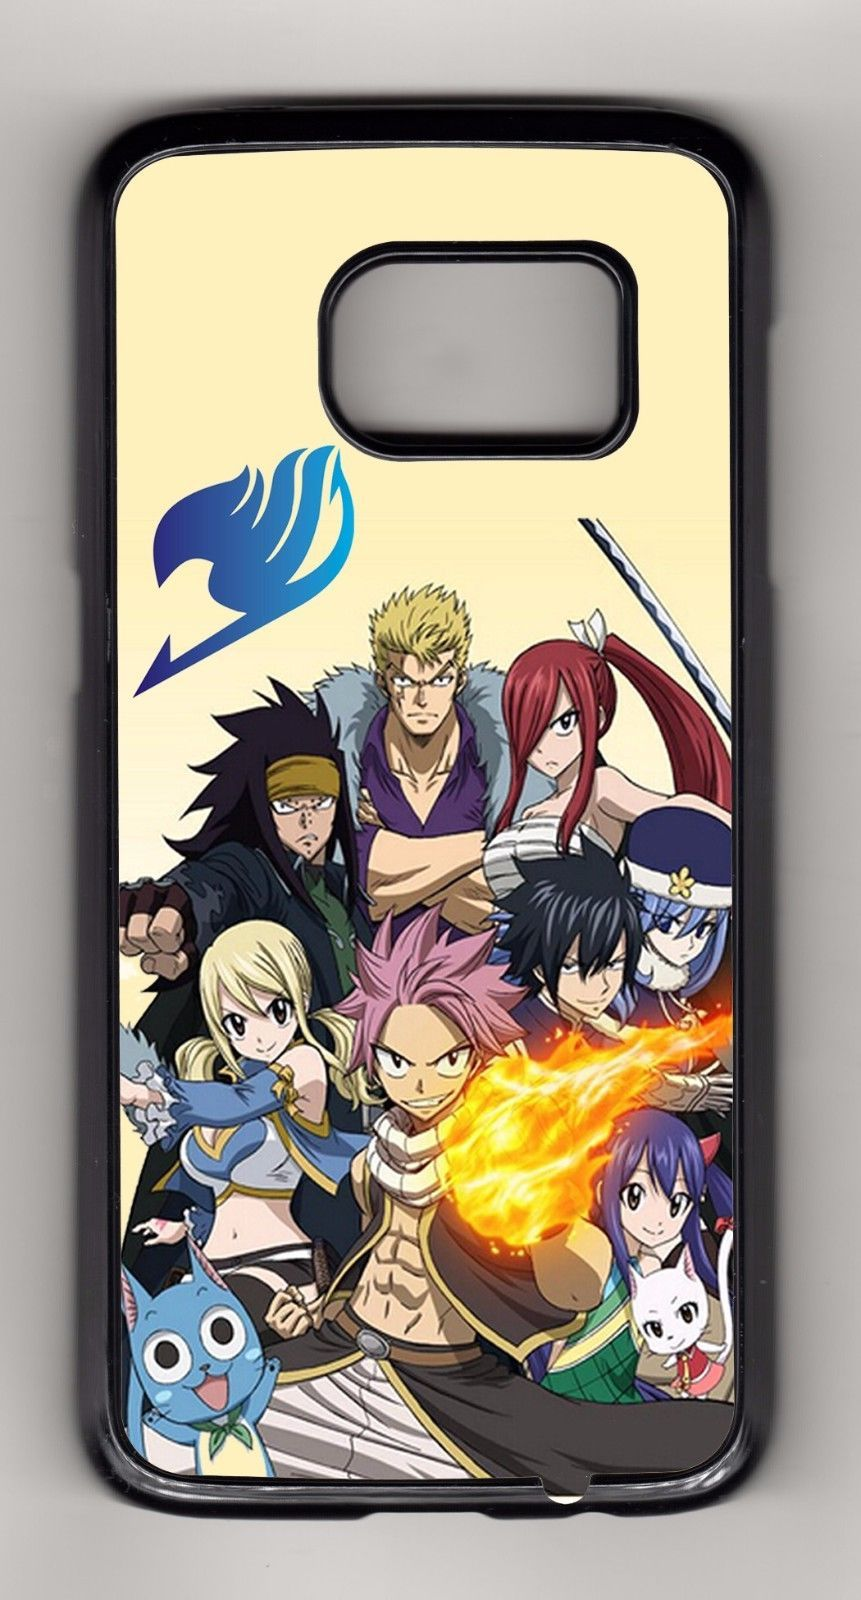 Fairy tail anime samsung galaxynote case or wallet